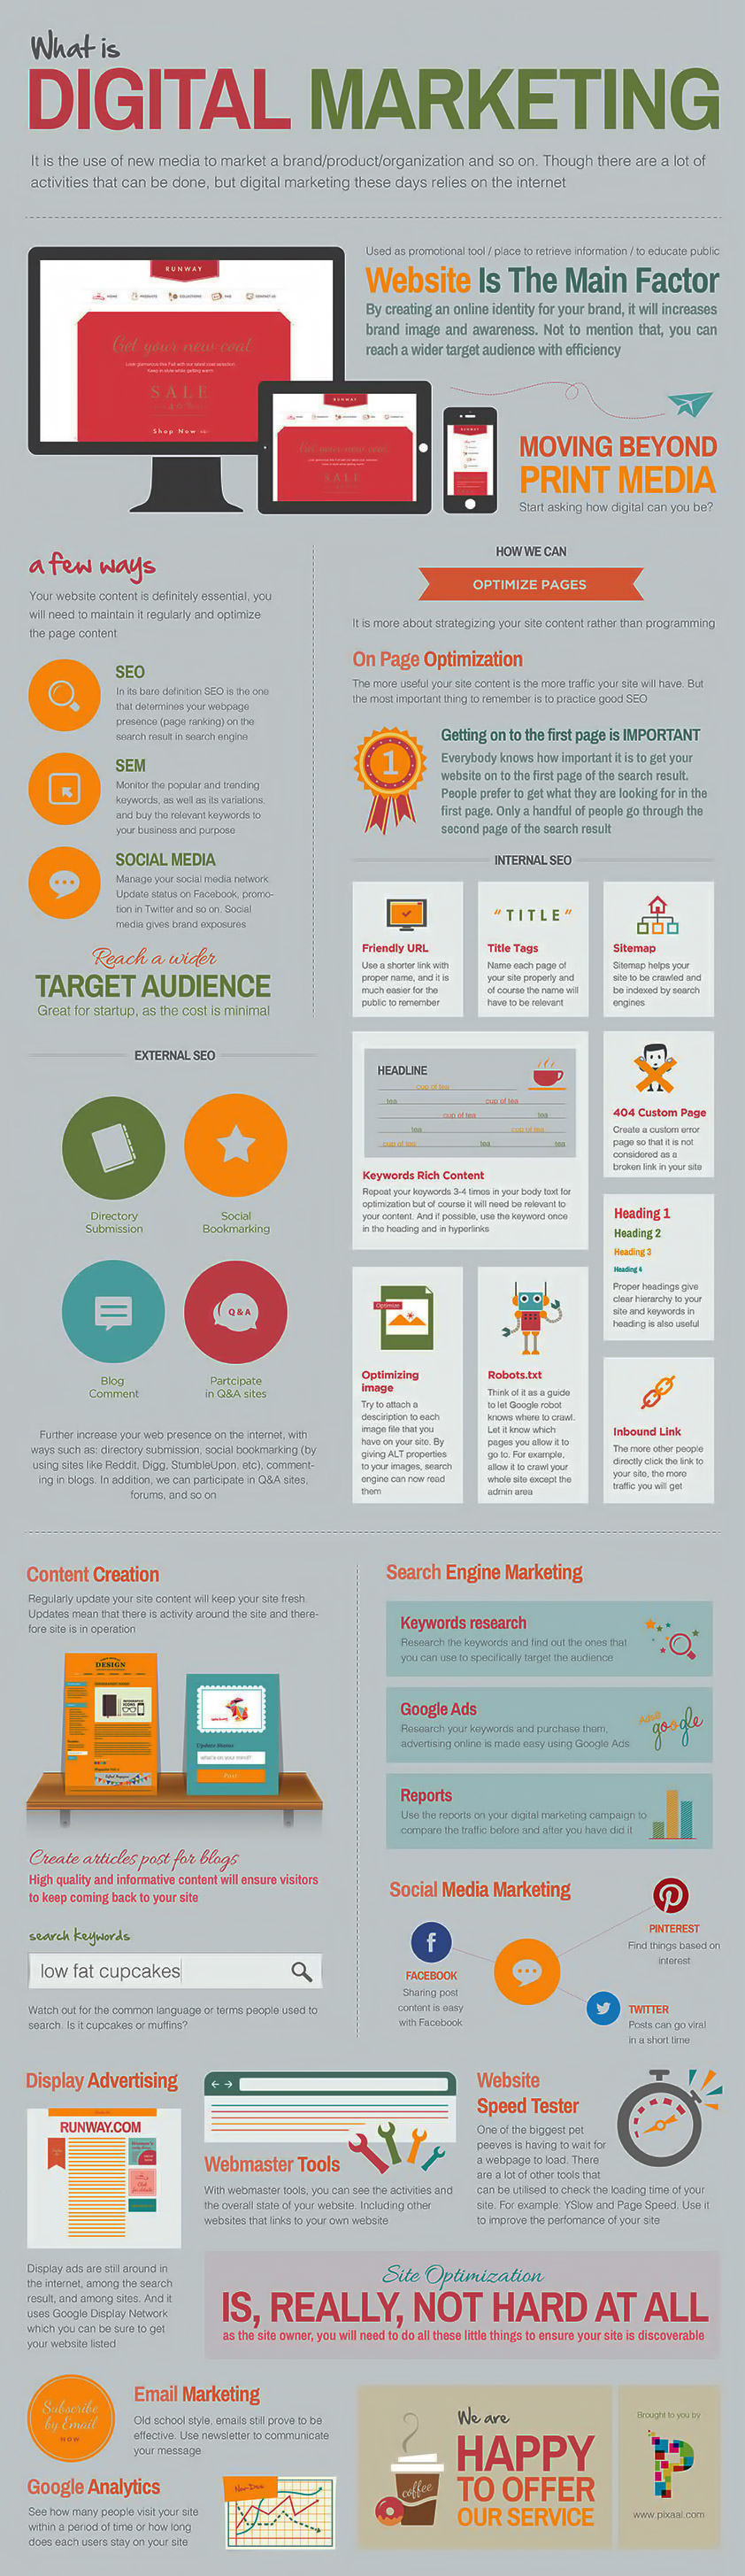 How-to-carry-out-digital-marketing-infographic-2013-1